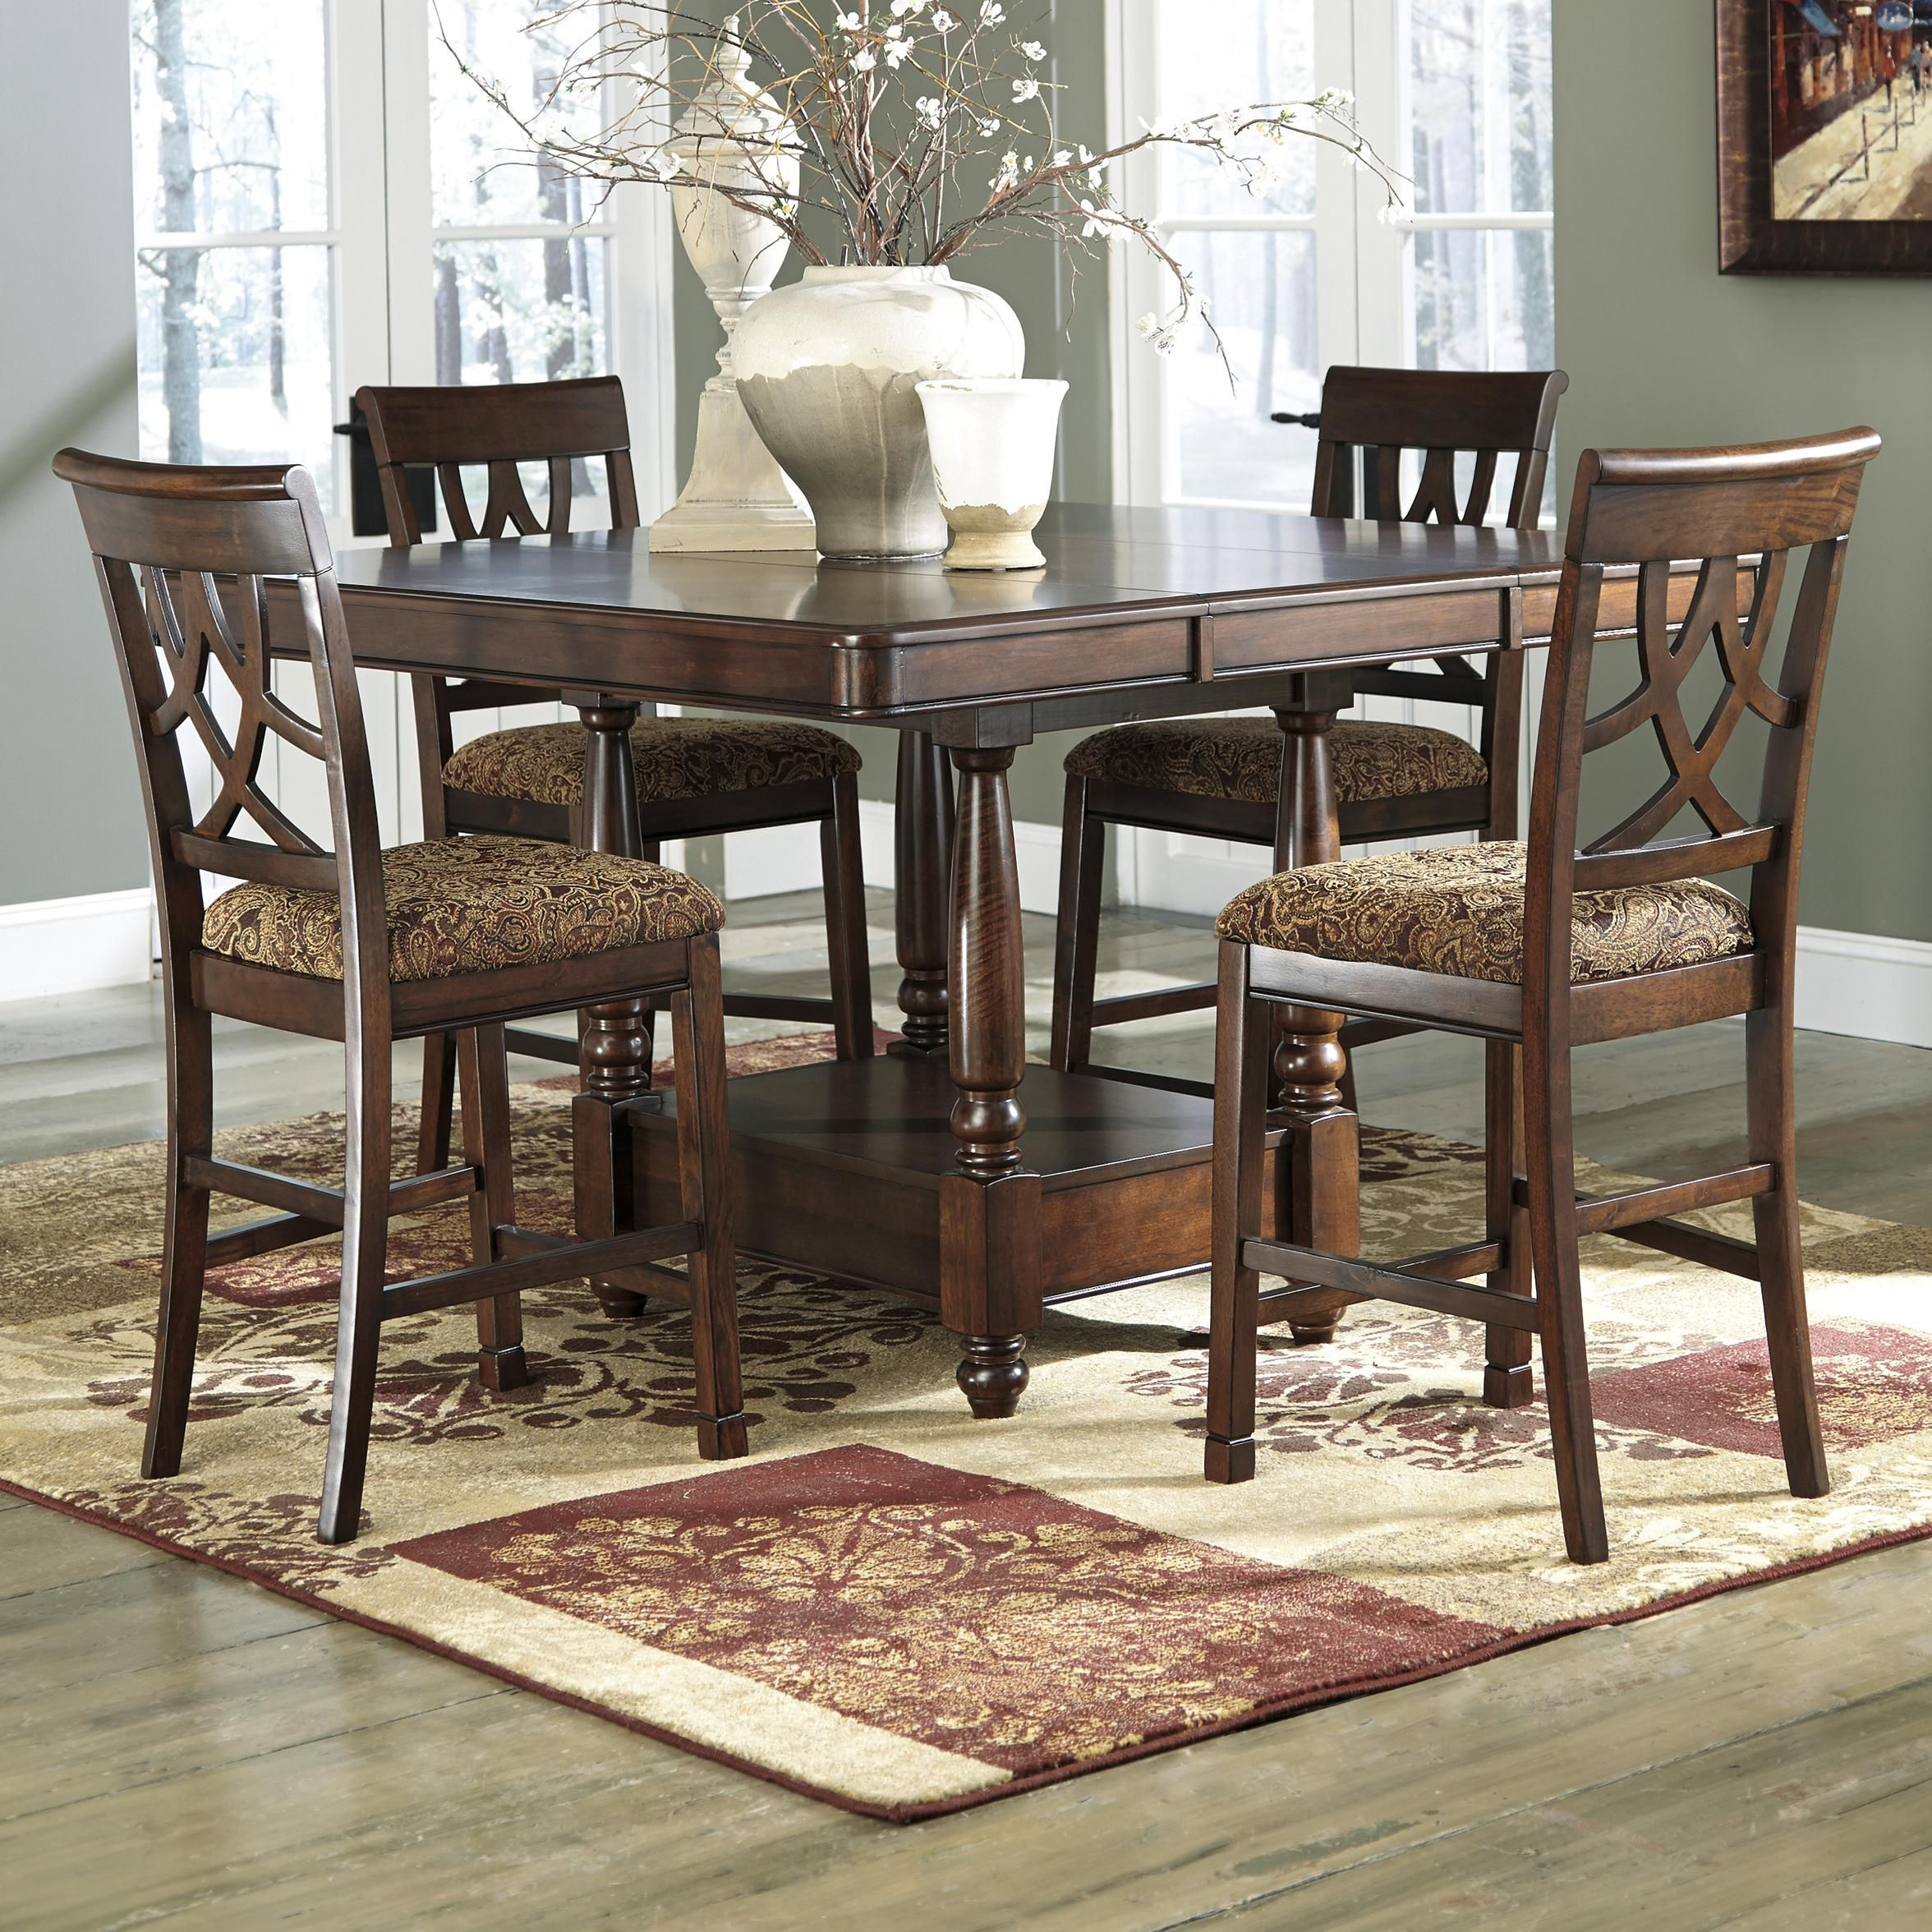 ashley furniture kitchen tables organizing cabinets leahlyn 5 piece dining room set table and 4 chairs by